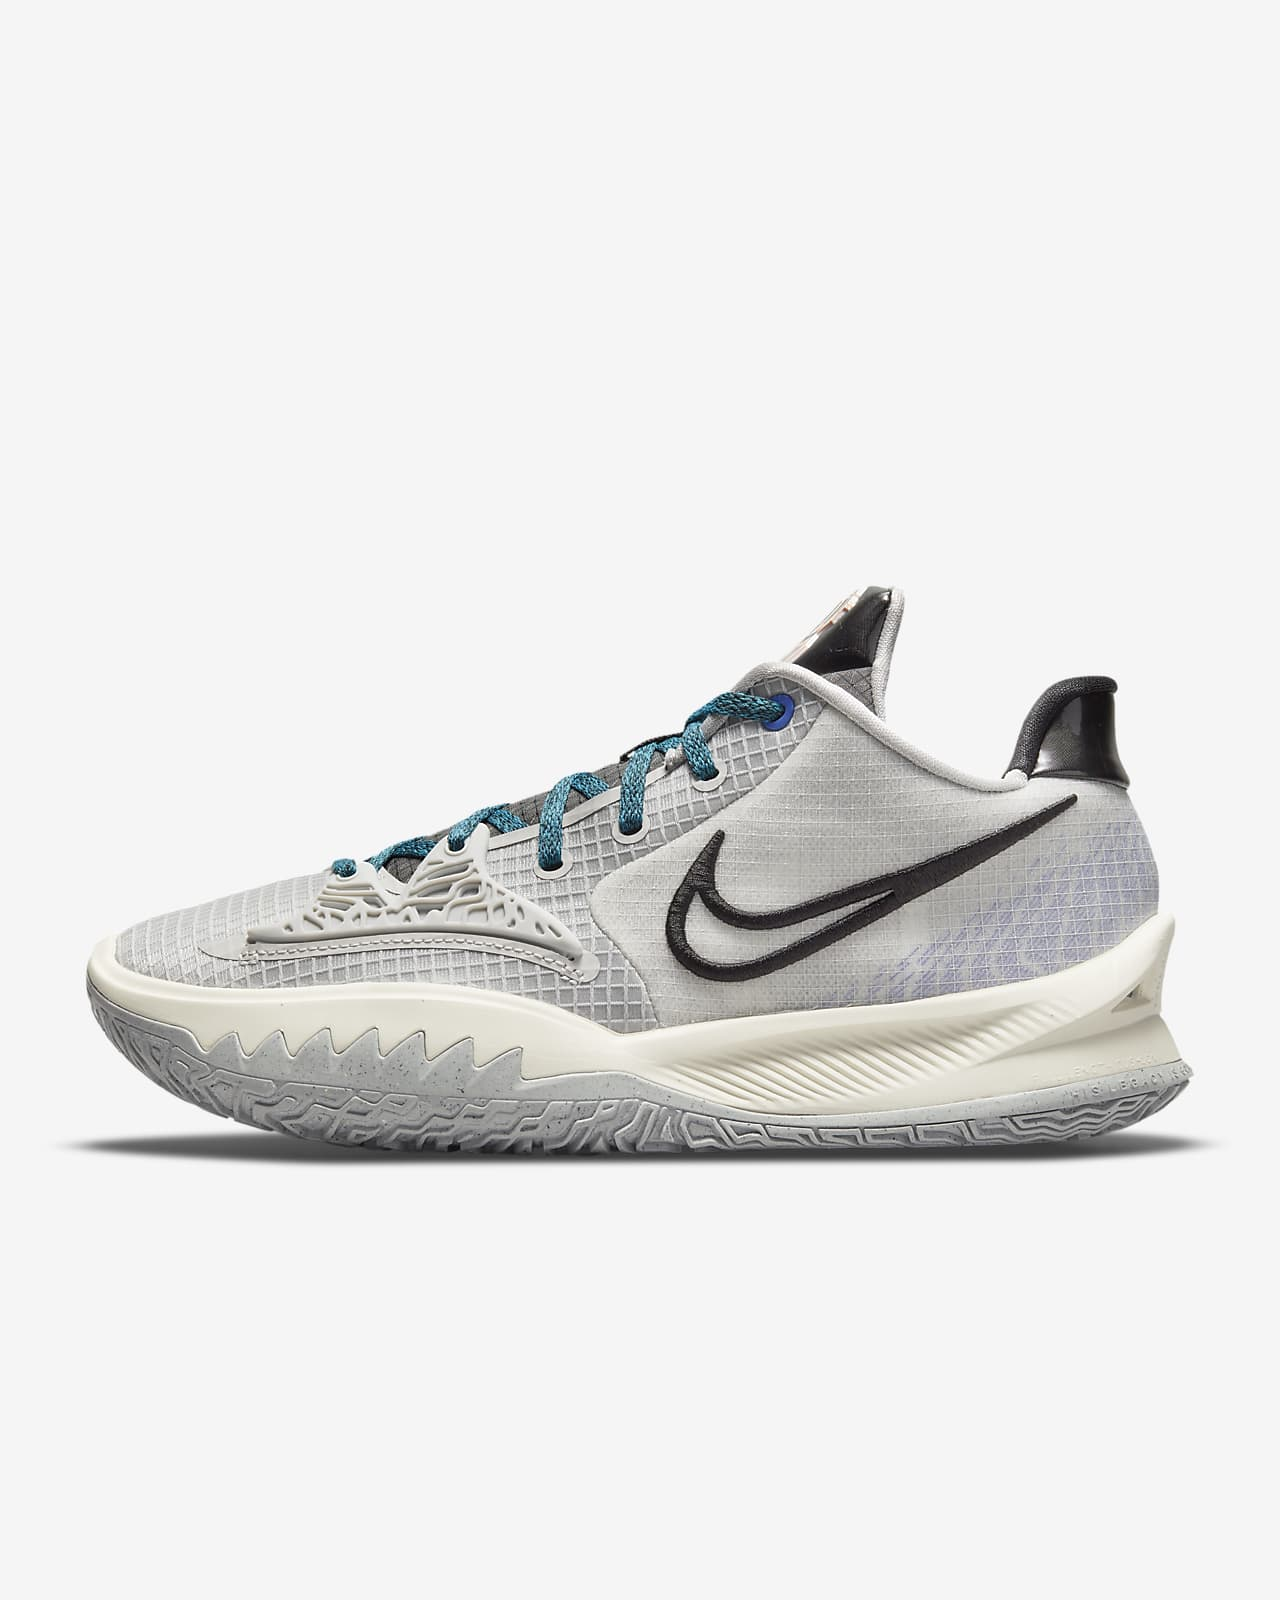 Kyrie Low 4 EP Basketball Shoes